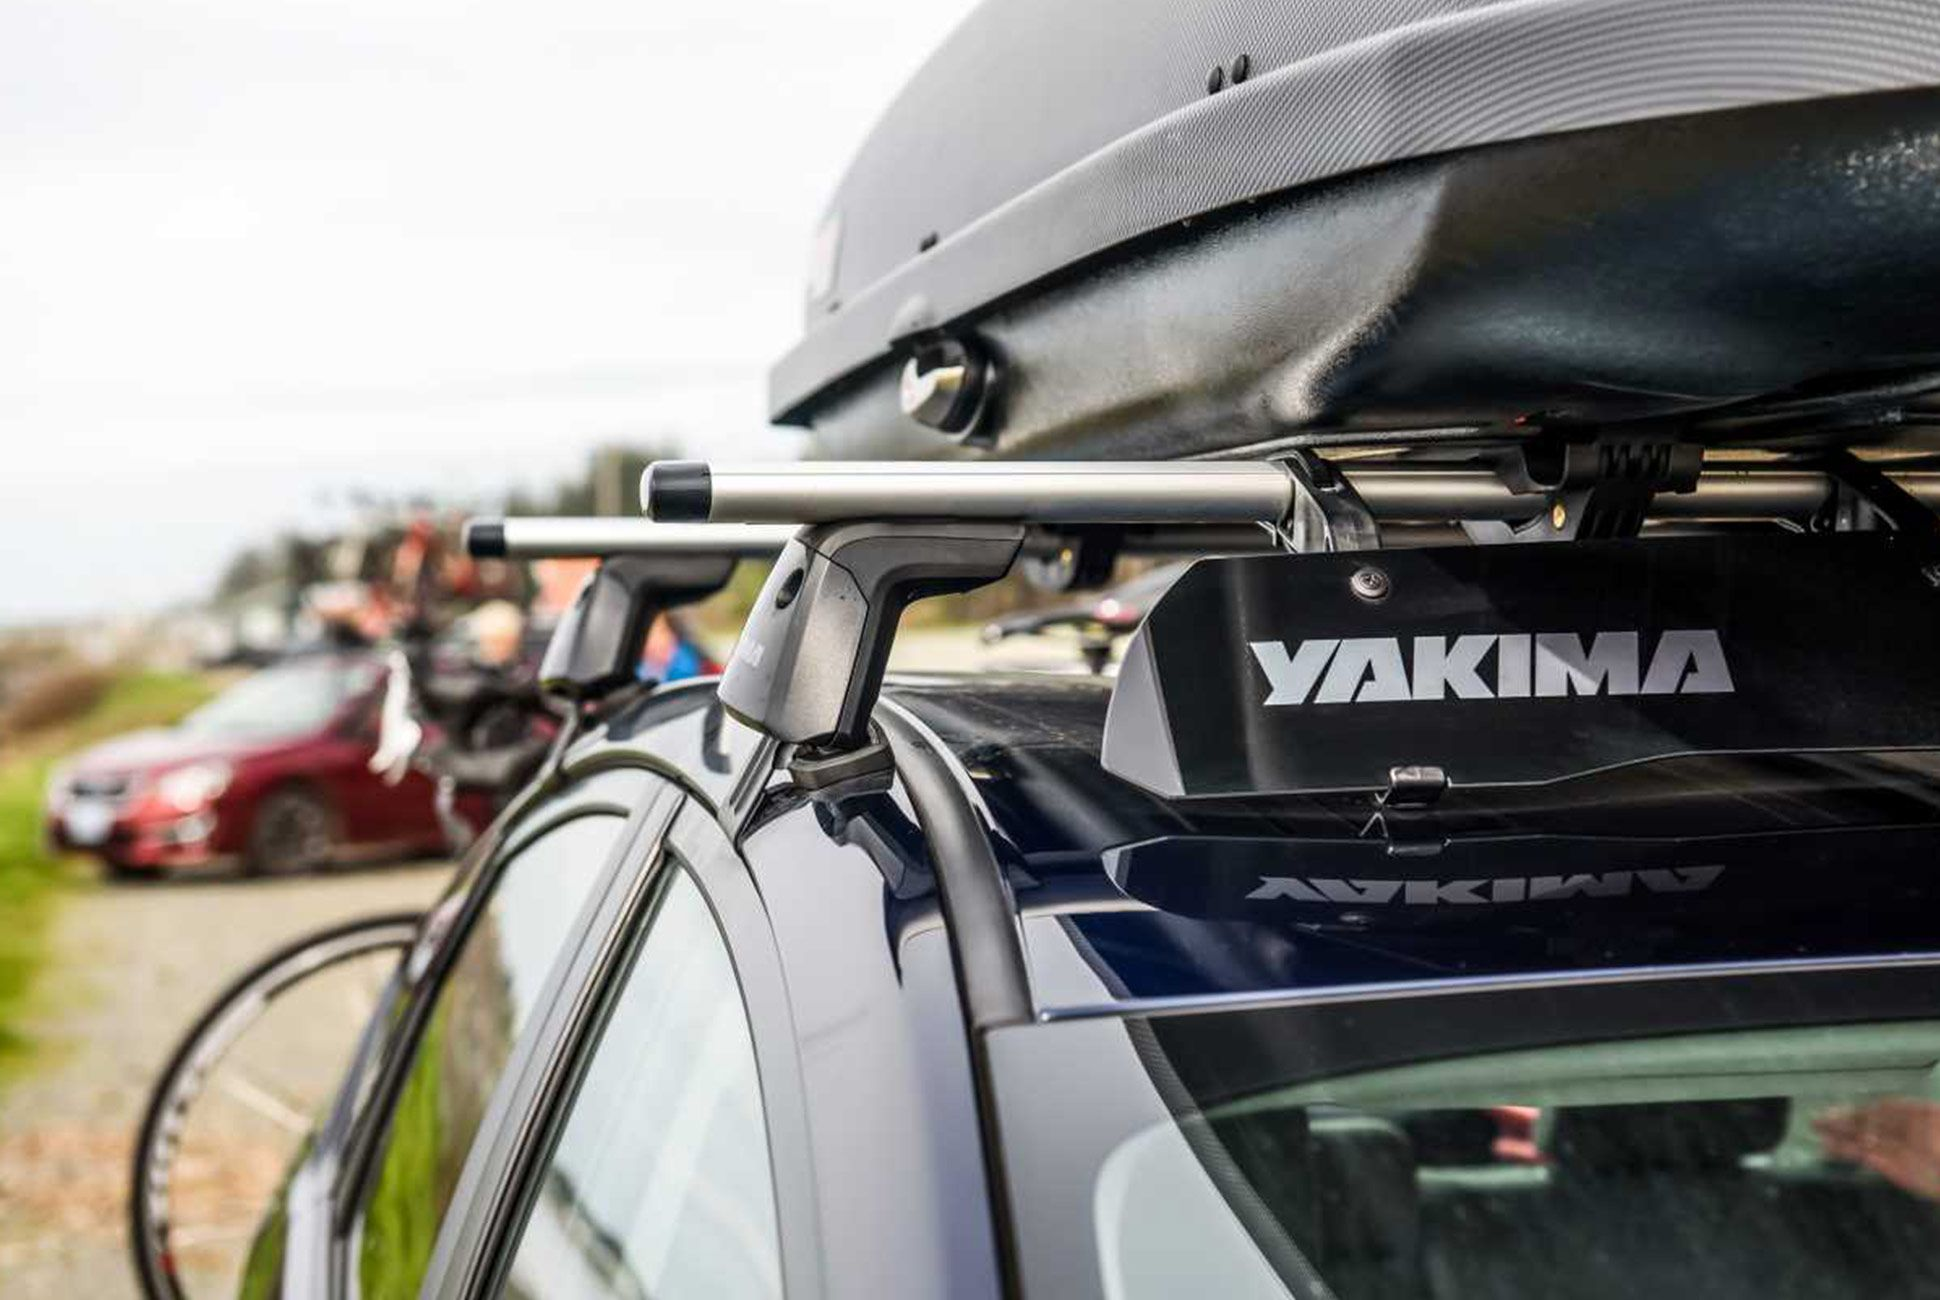 7 Excellent Roof Racks For Hauling Gear